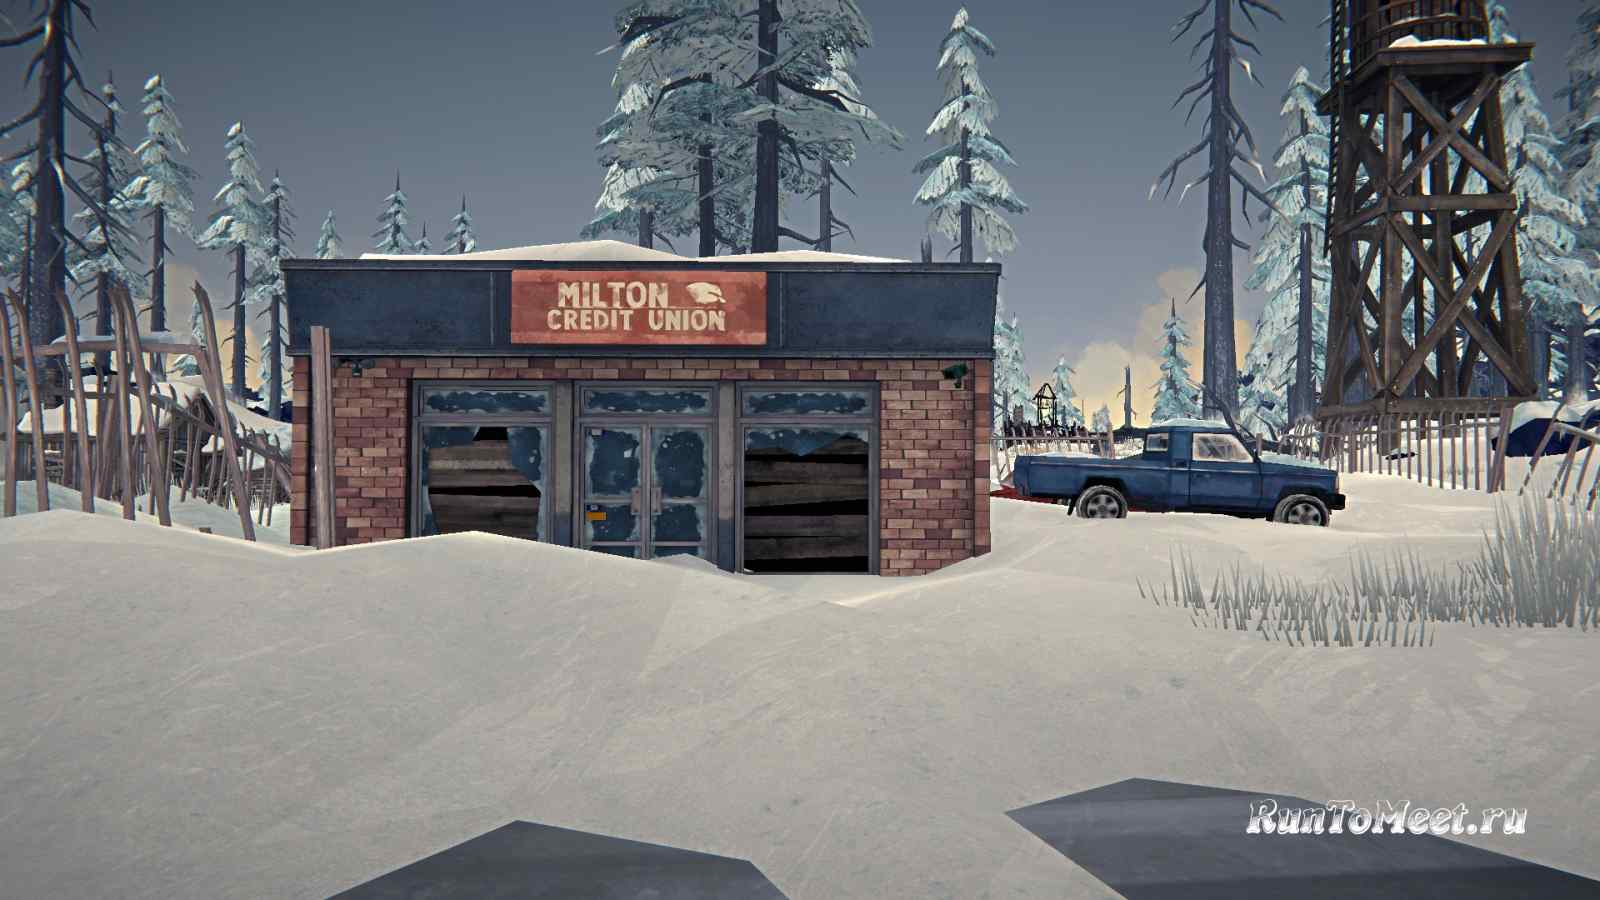 Здание банка, на локации Милтон, в игре The long dark